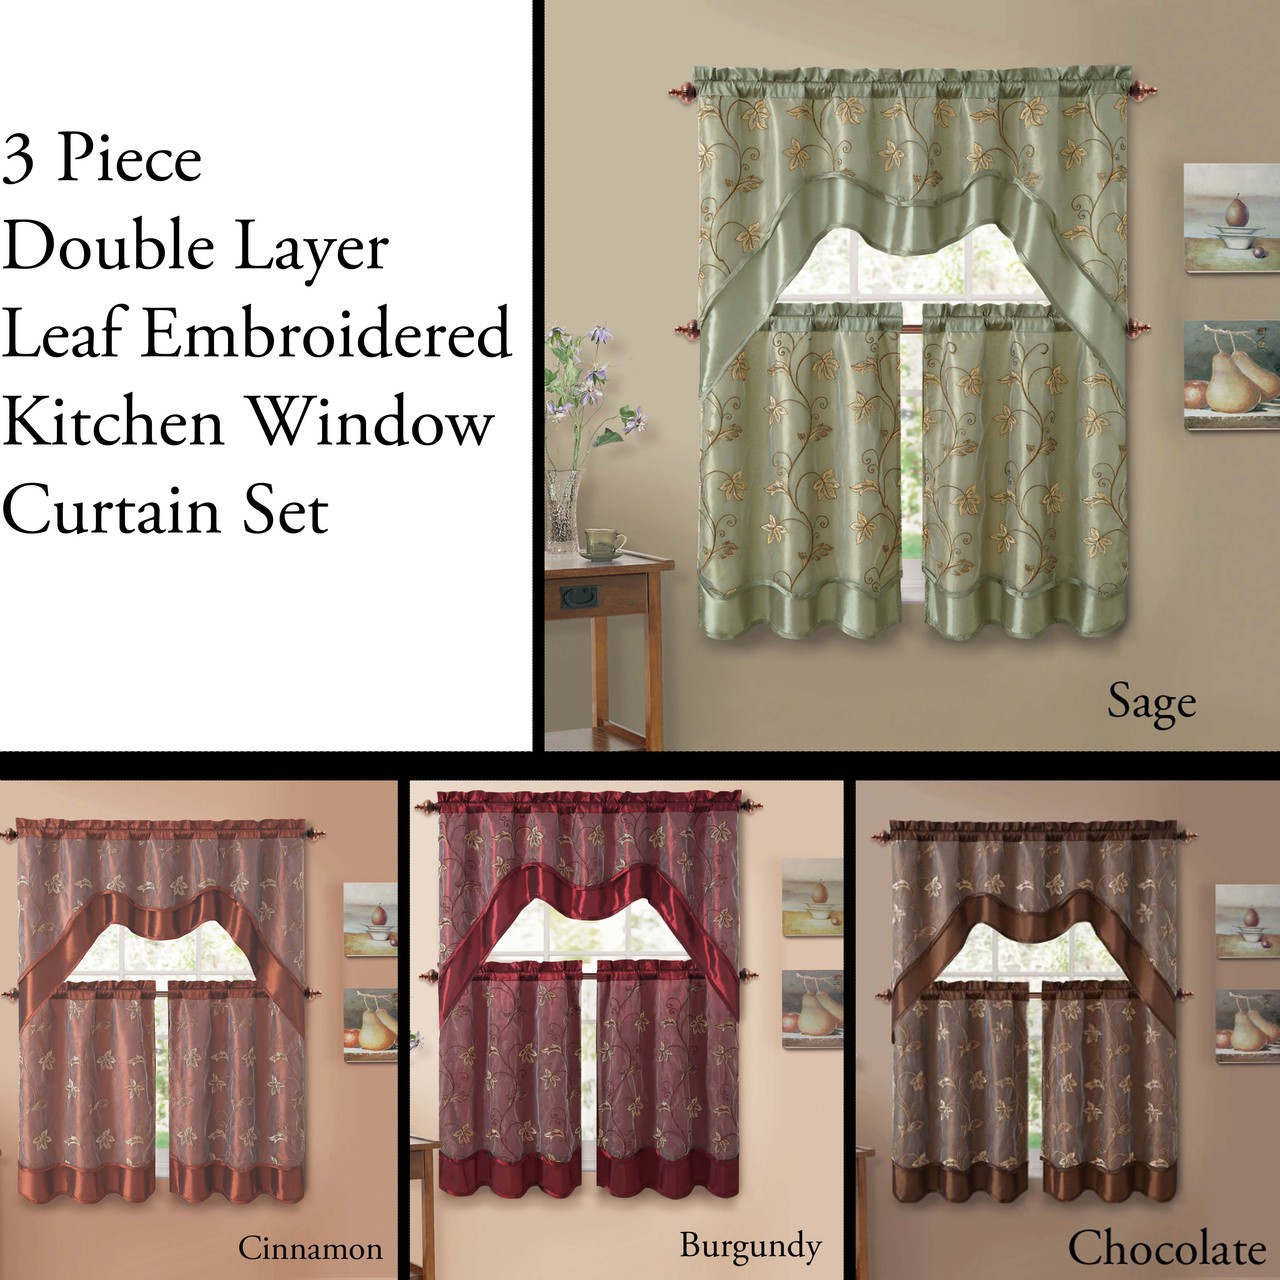 Piece double layer leaf embroidered kitchen window